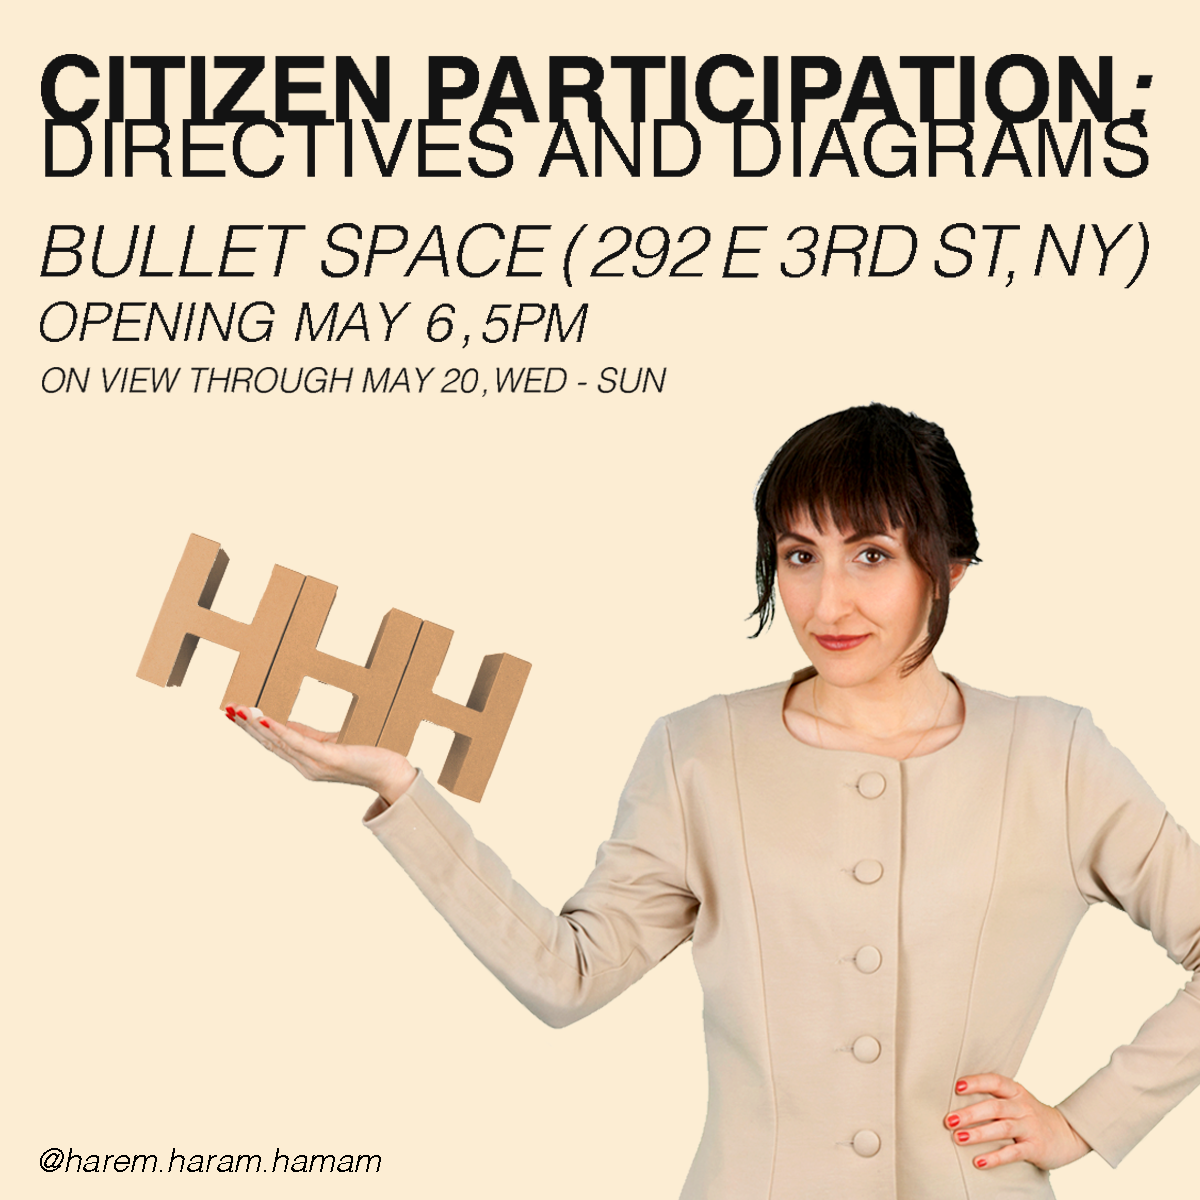 BULLETSPACE AD